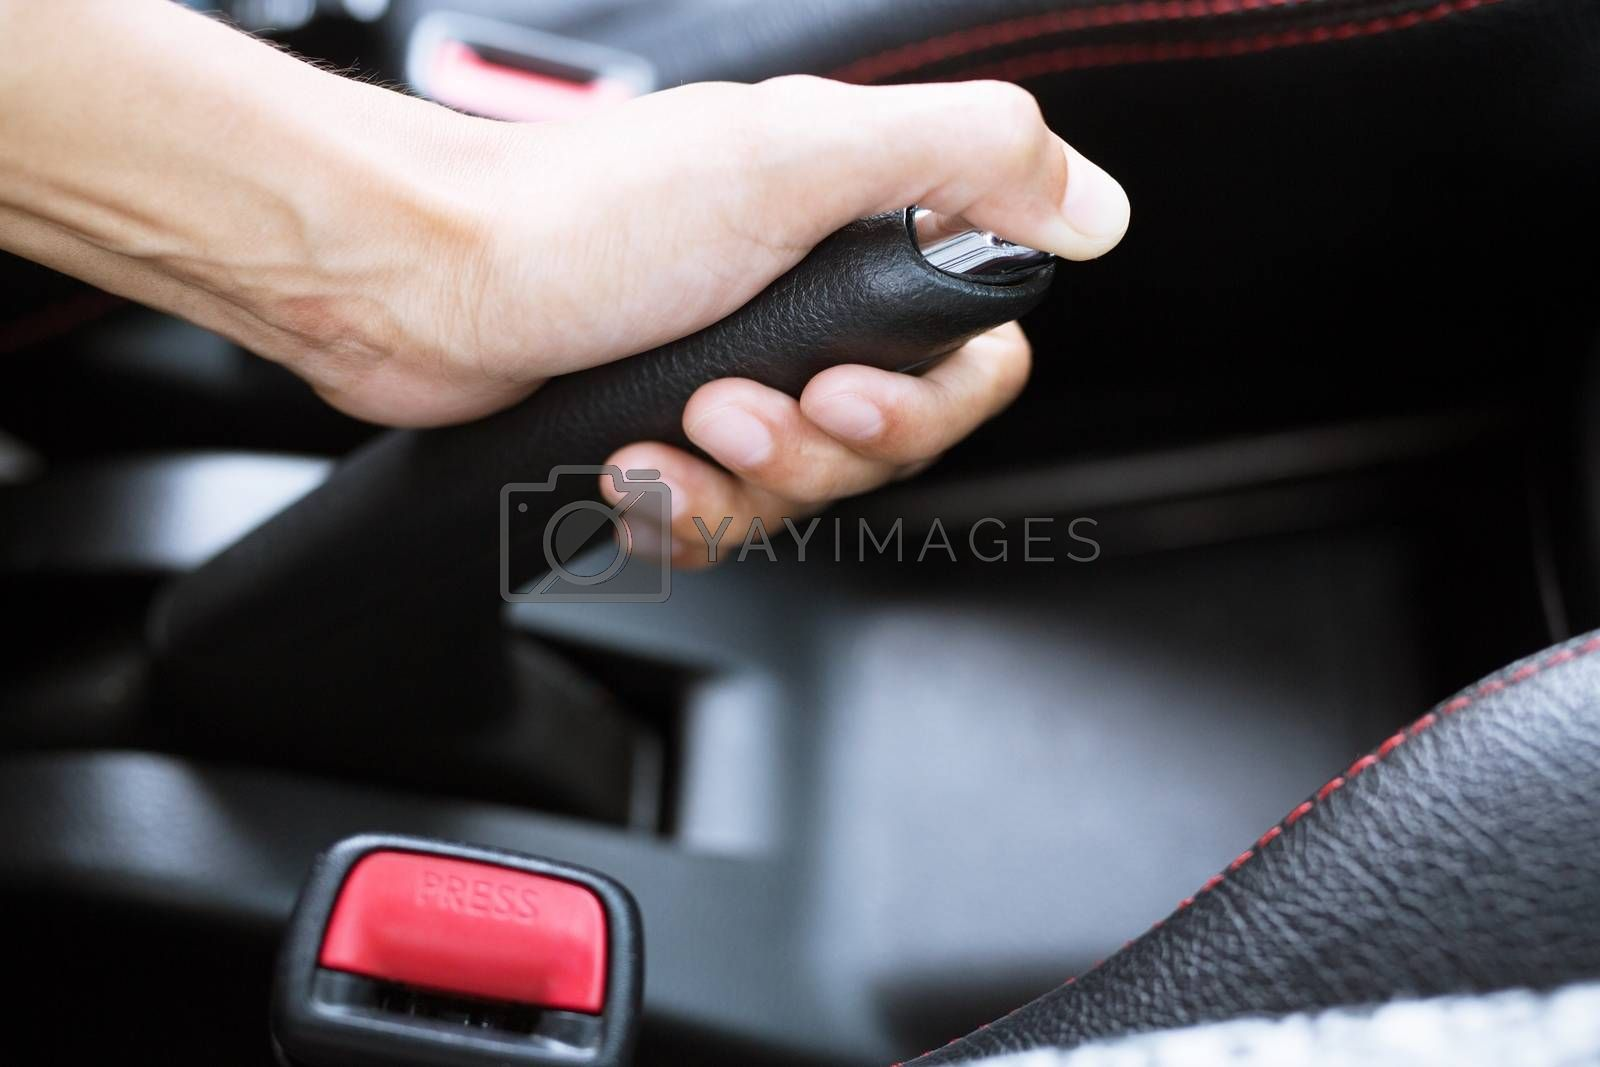 Closeup of young woman pulling handbrake lever in car For safety while parking.